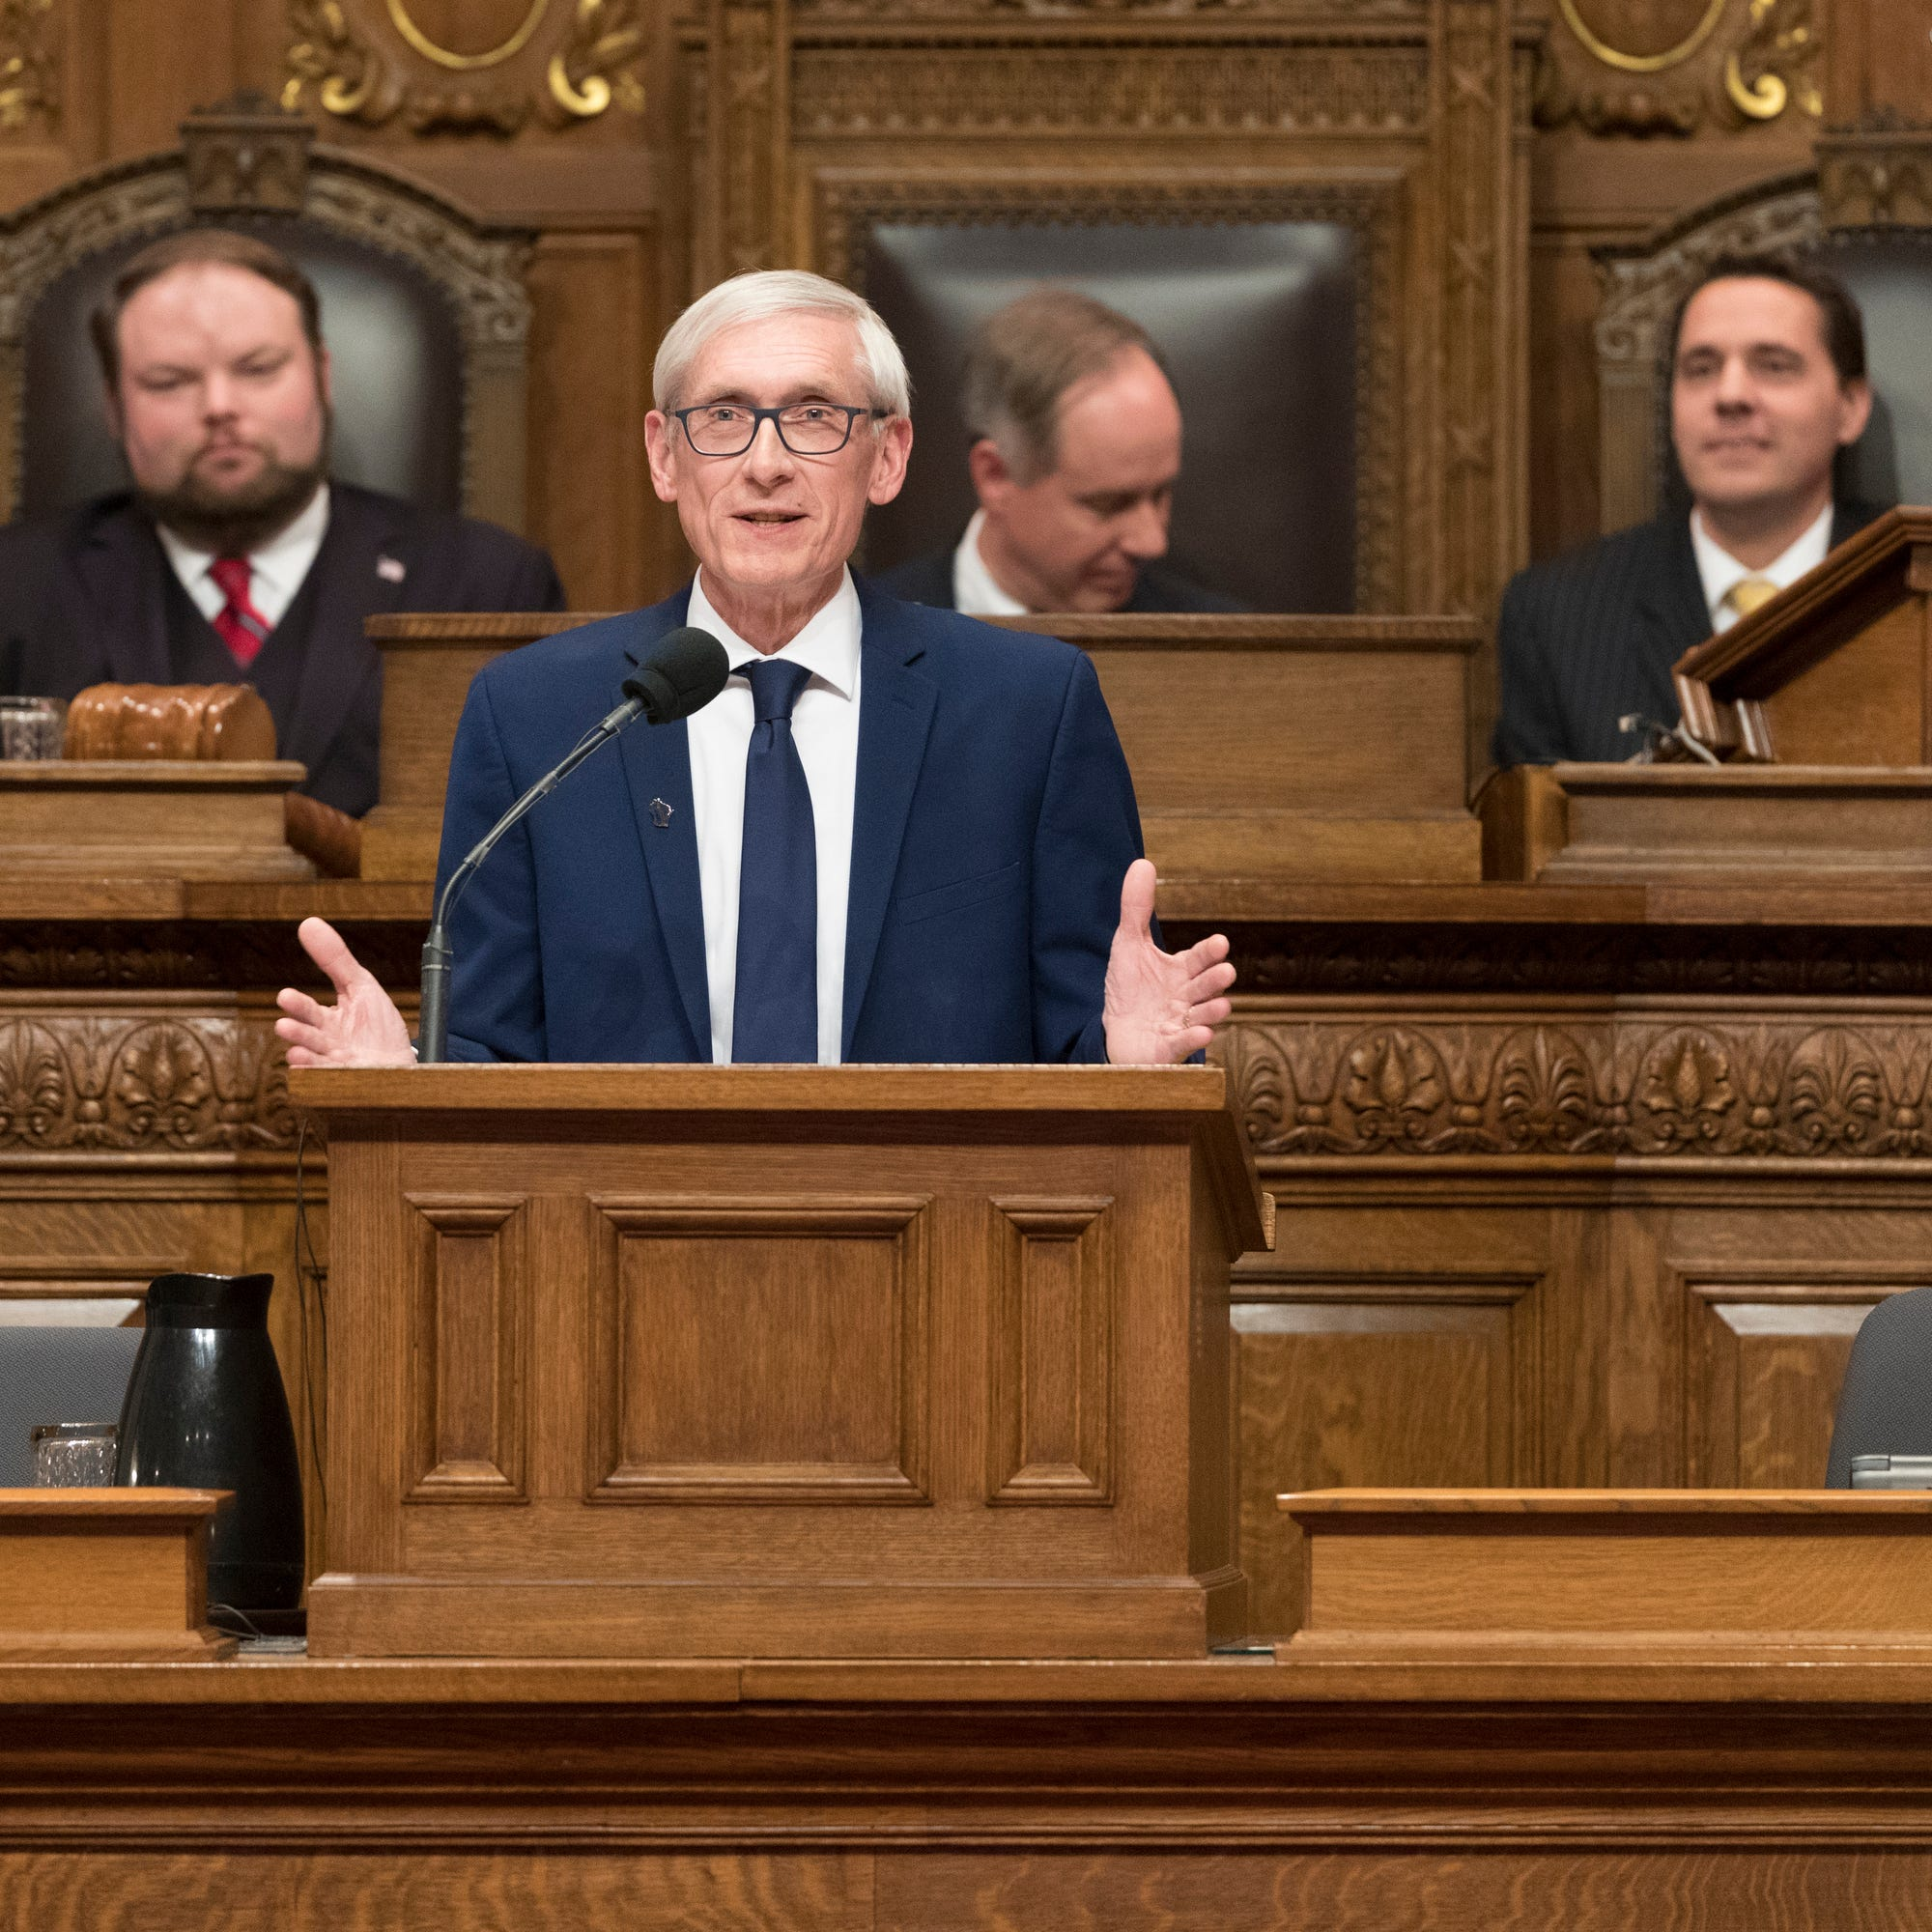 Republicans reject Tony Evers' $2.5 billion plan for building projects